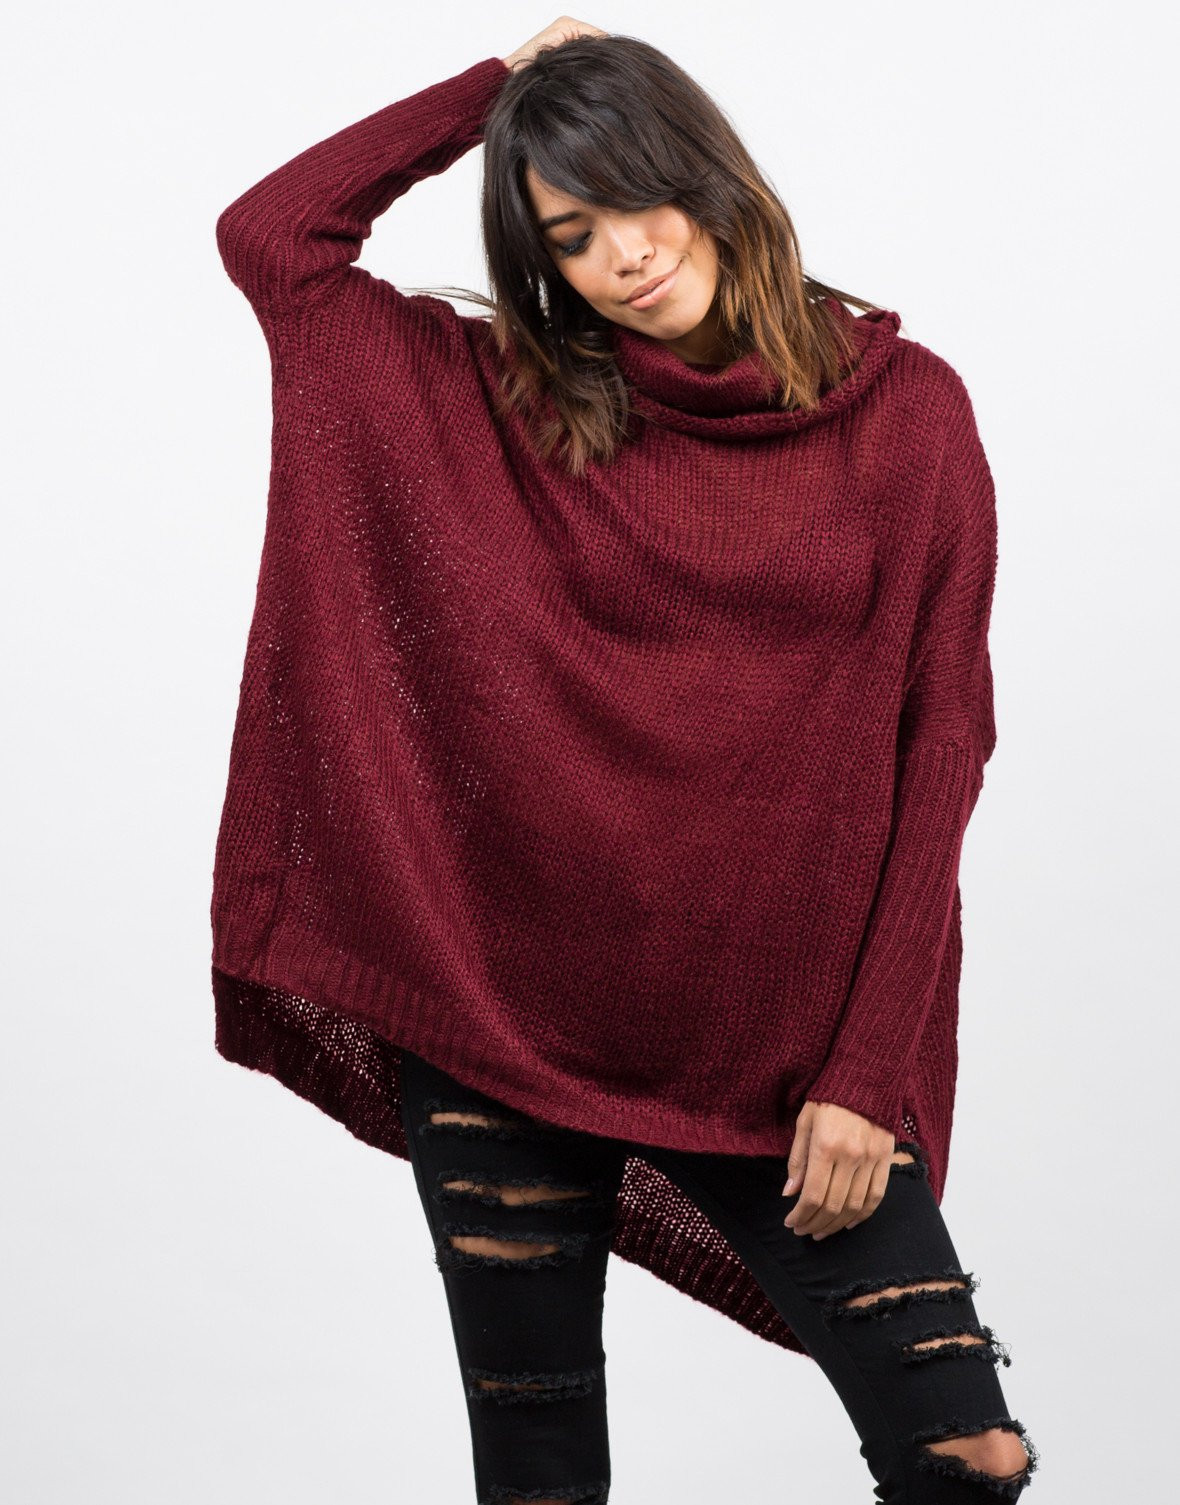 Luxury Oversized Knit Cowl Neck Sweater Red Turtleneck Knit Cowl Neck Knit Sweater Of Top 42 Pictures Cowl Neck Knit Sweater